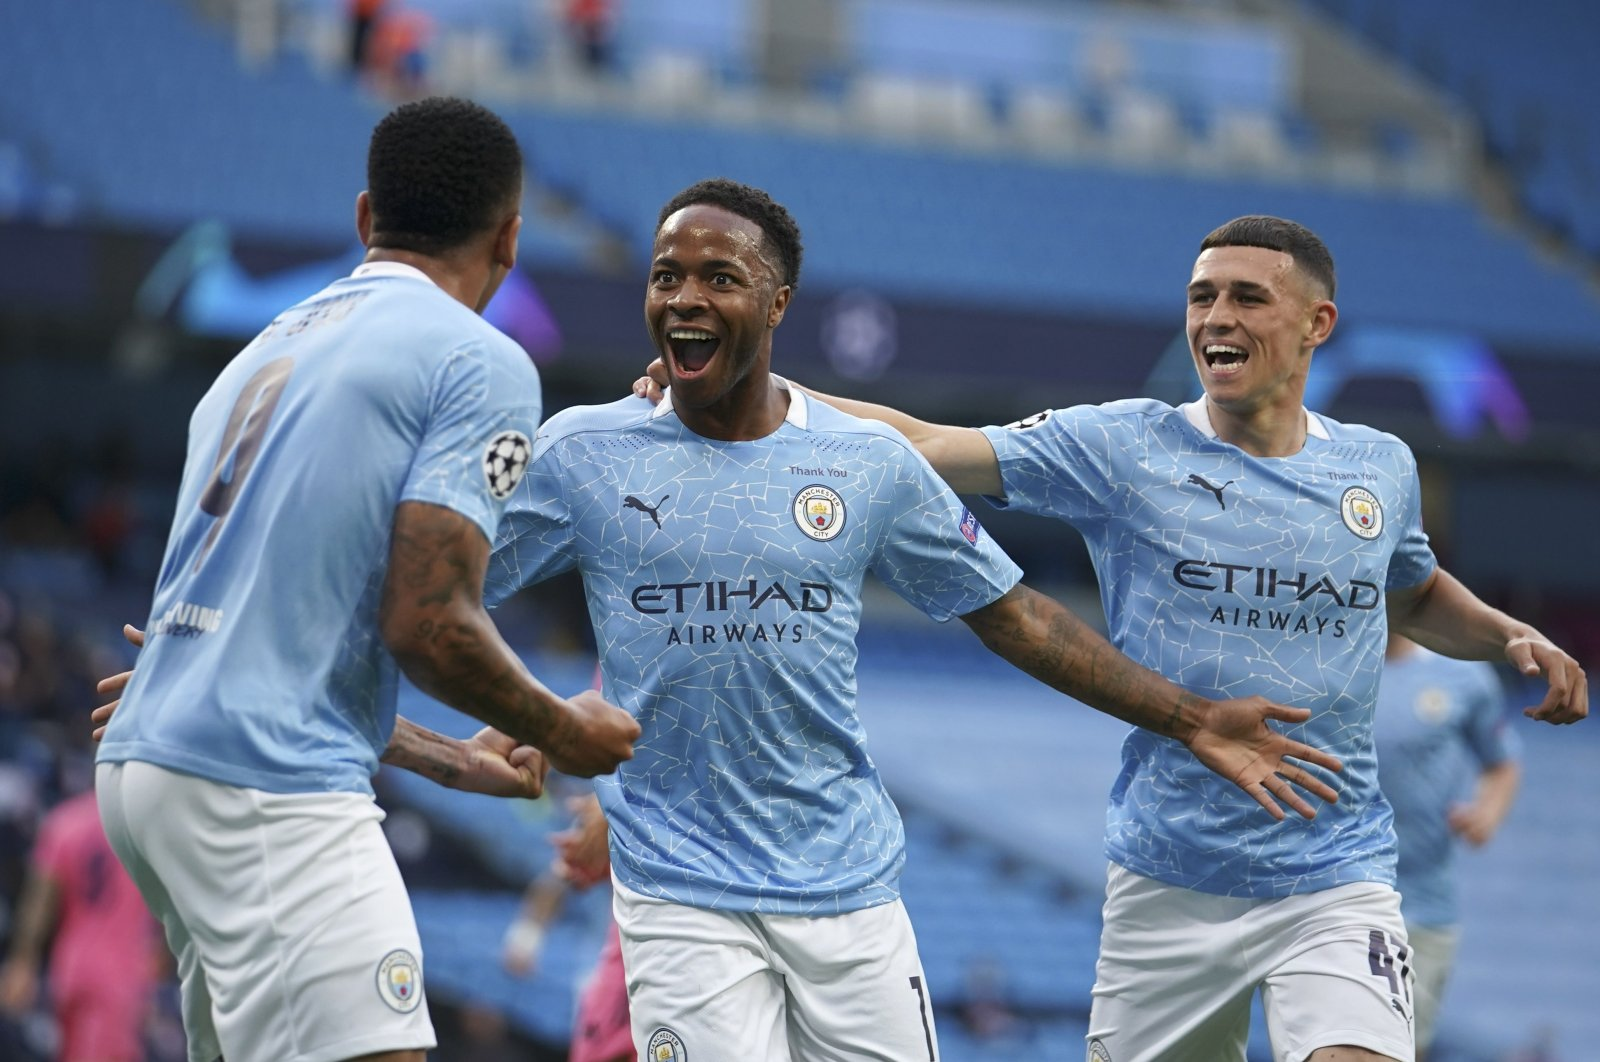 Manchester City's Raheem Sterling, center, celebrates after scoring the opening goal during the Champions League round of 16, second leg football match between Manchester City and Real Madrid at the Etihad Stadium stadium in Manchester, England, Friday, Aug. 7, 2020. (AP Photo)